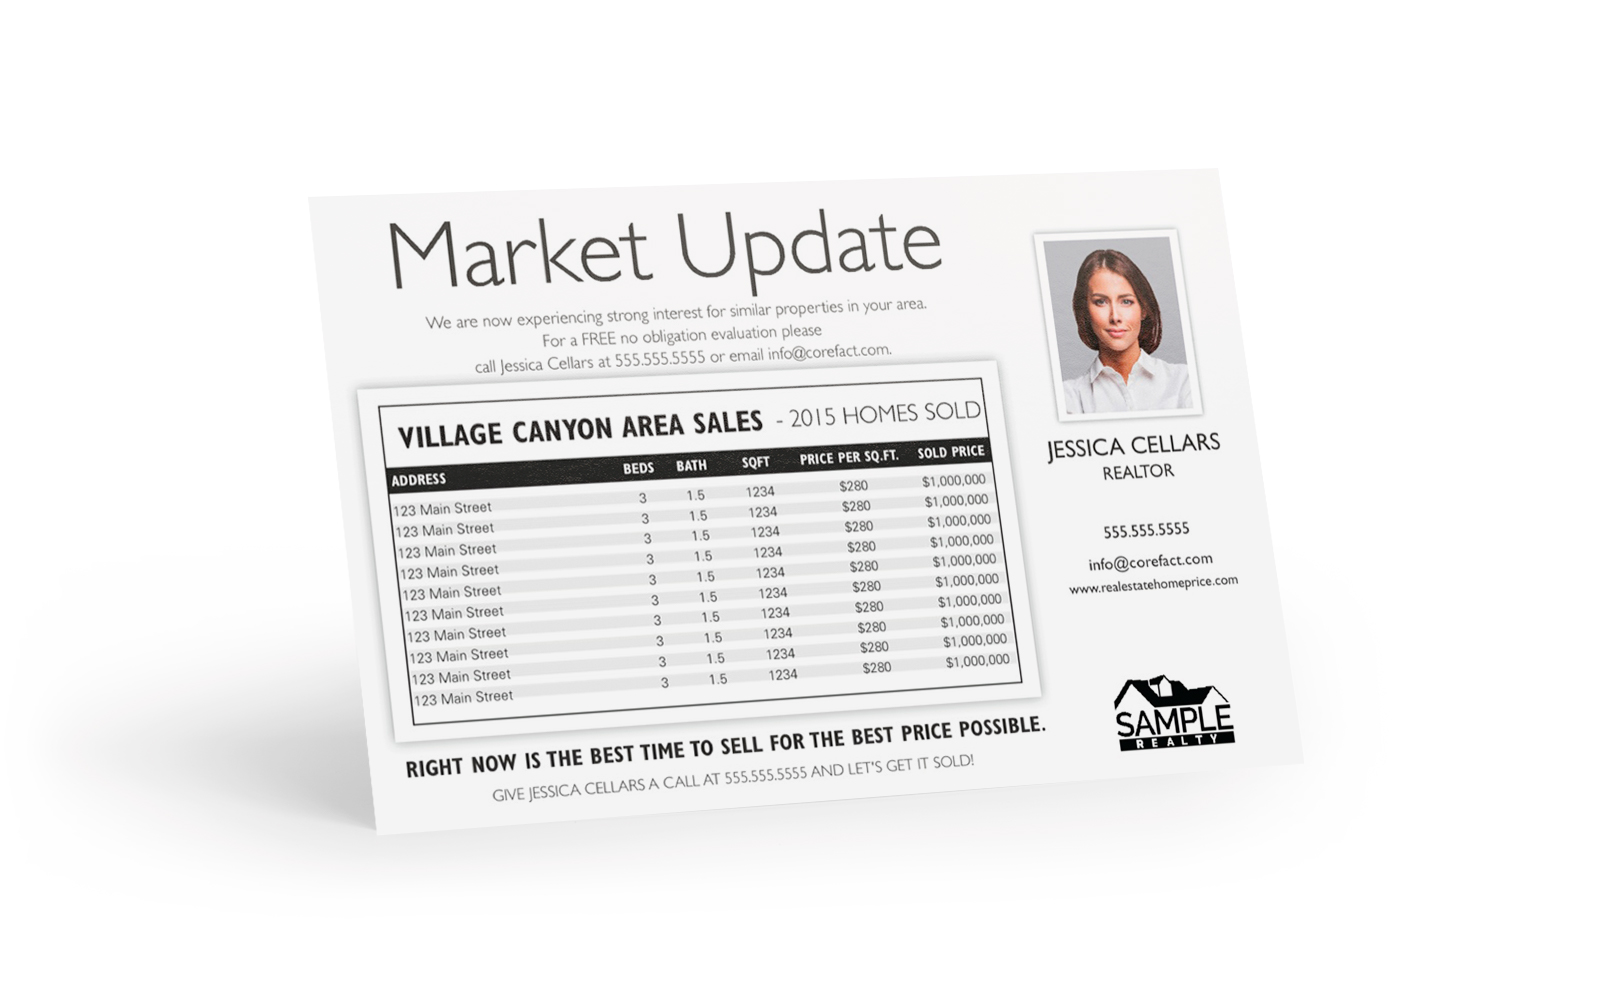 Corefact Market Update - Local 02 (Manual)